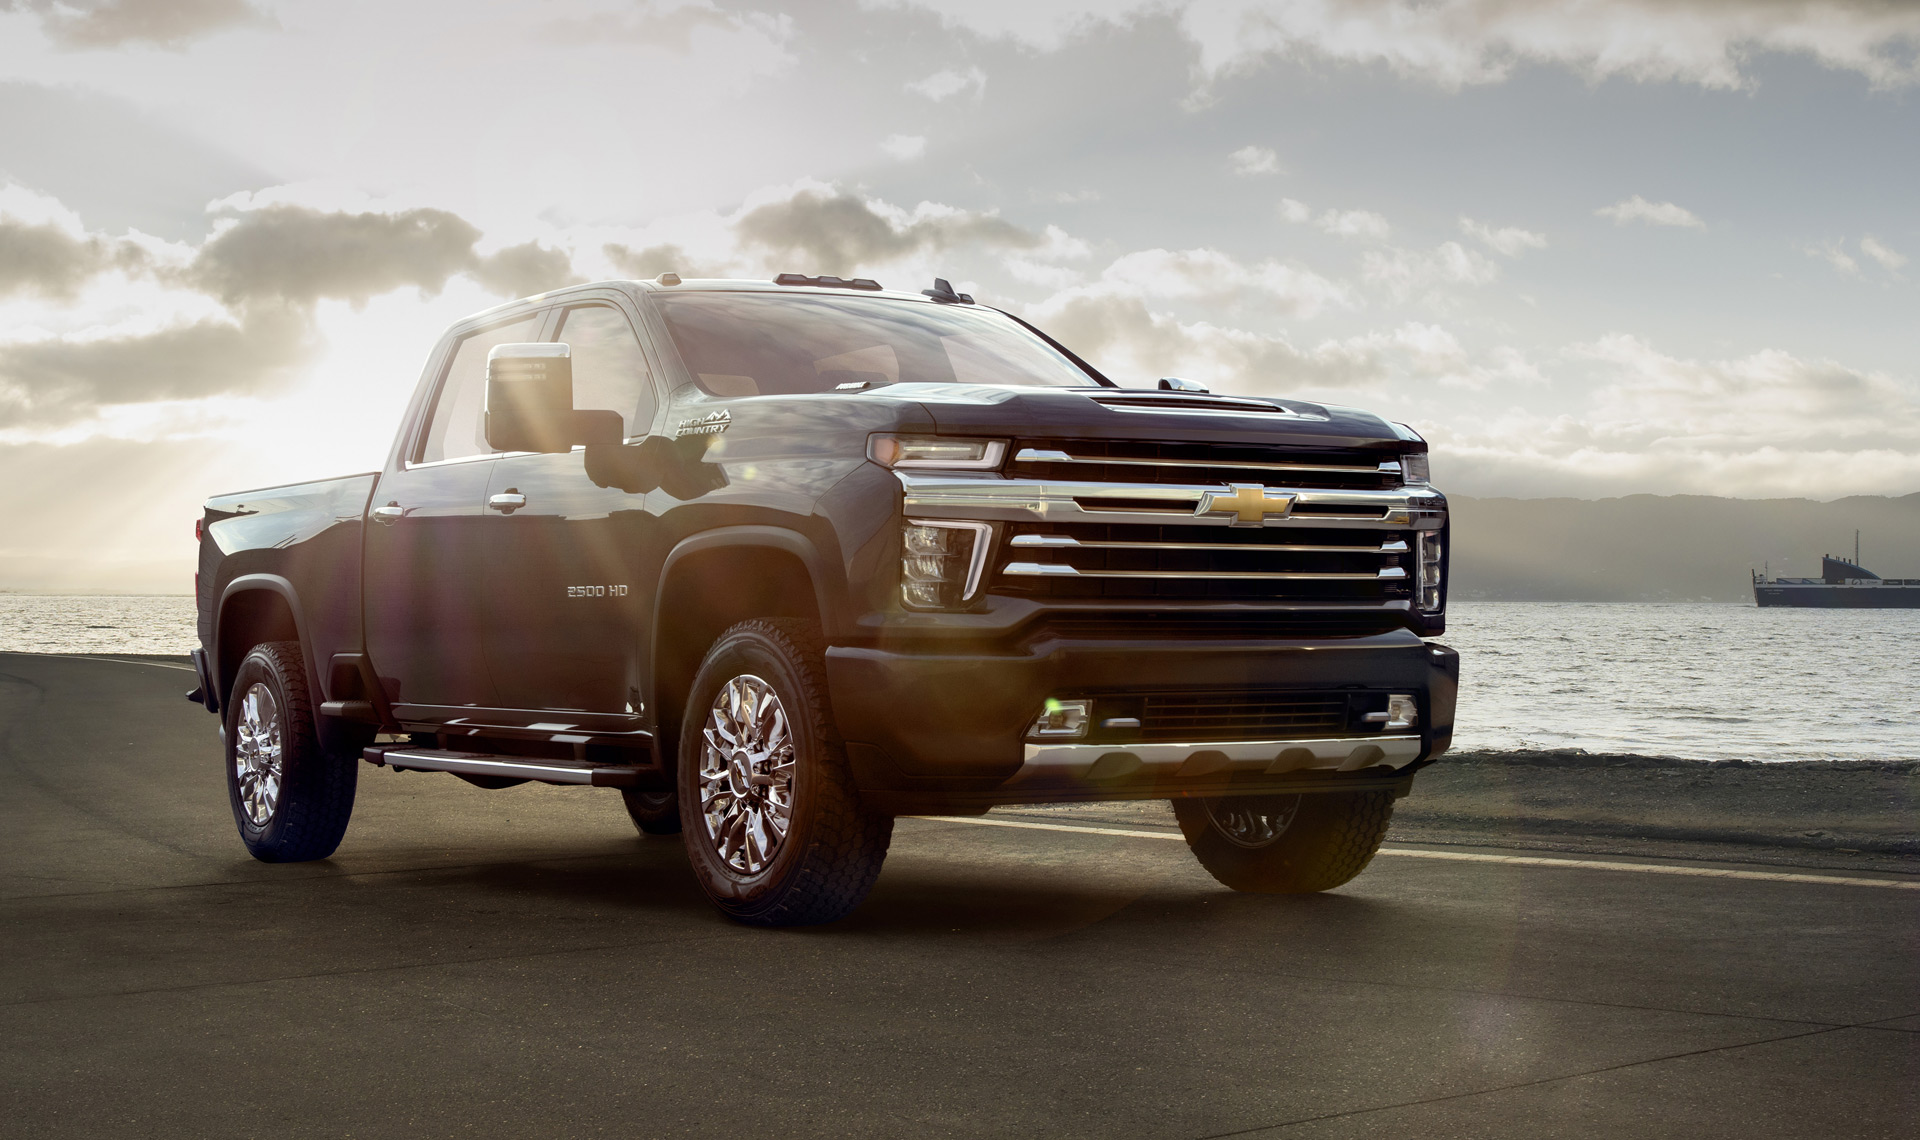 2020 Chevrolet Silverado HD High Country revealed: Luxury ...